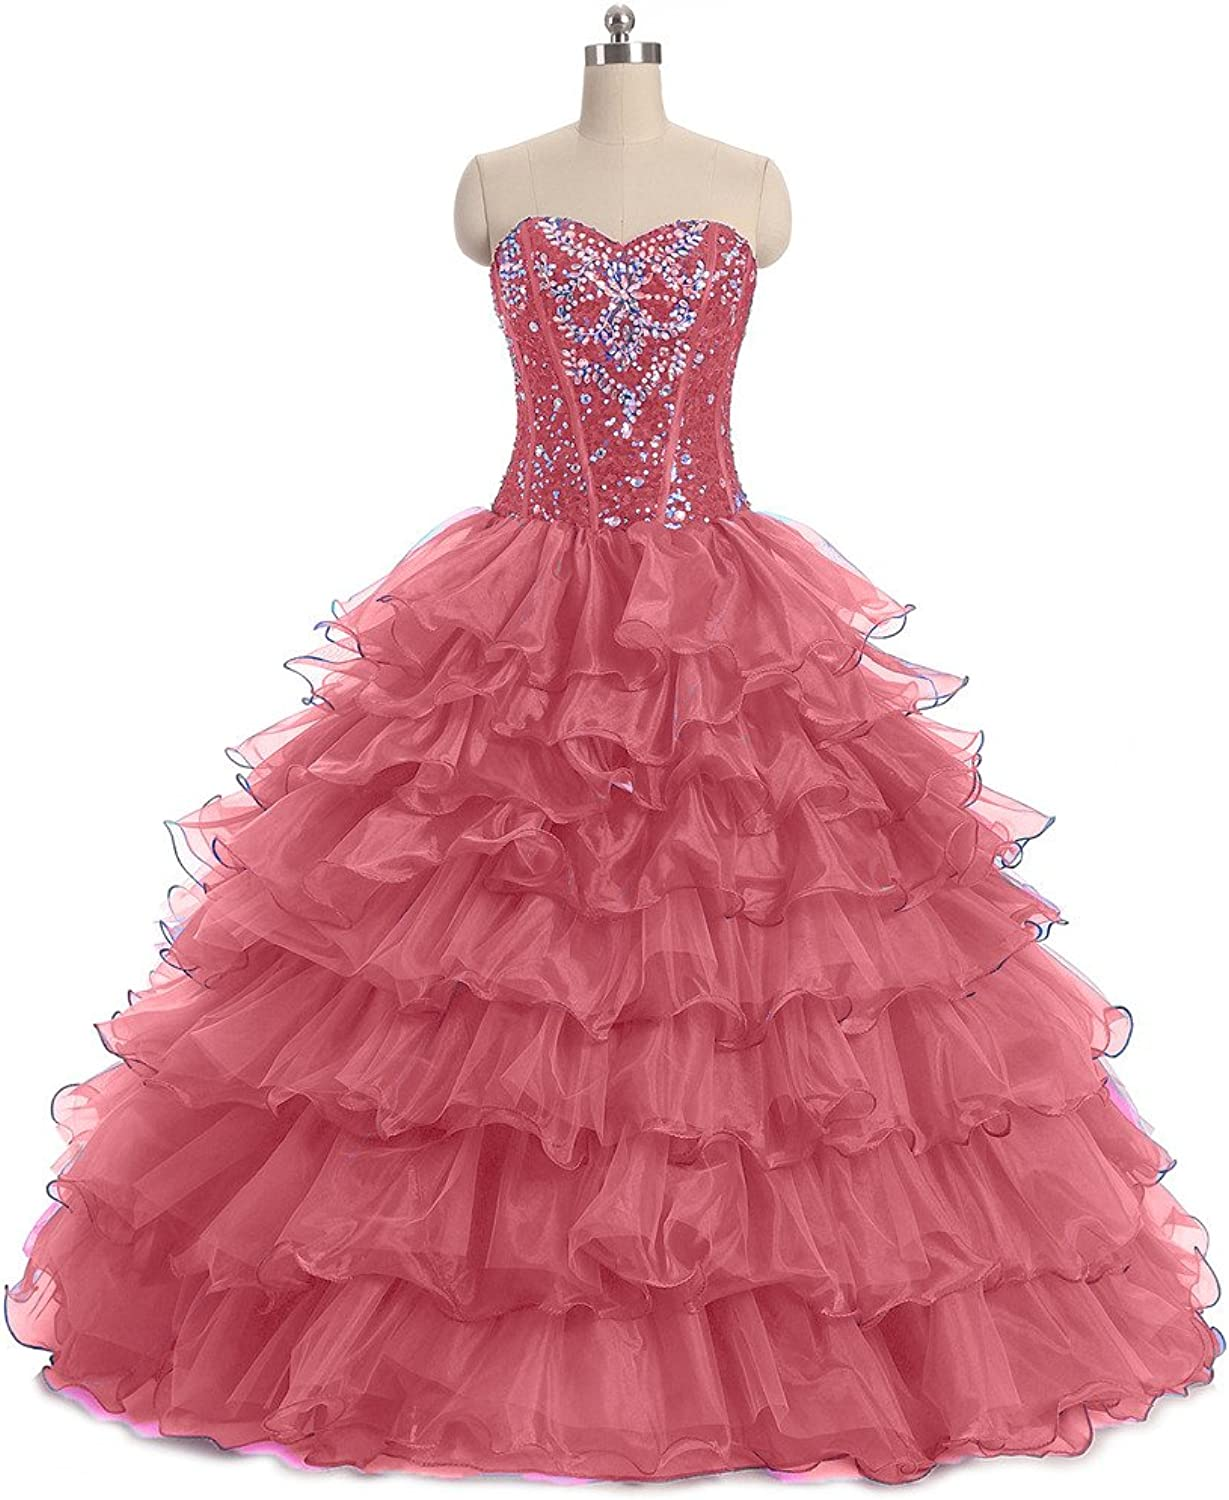 Diandiai Women's Ball Gown Quinceanera Dresses Crystal Ruffles Prom Gown